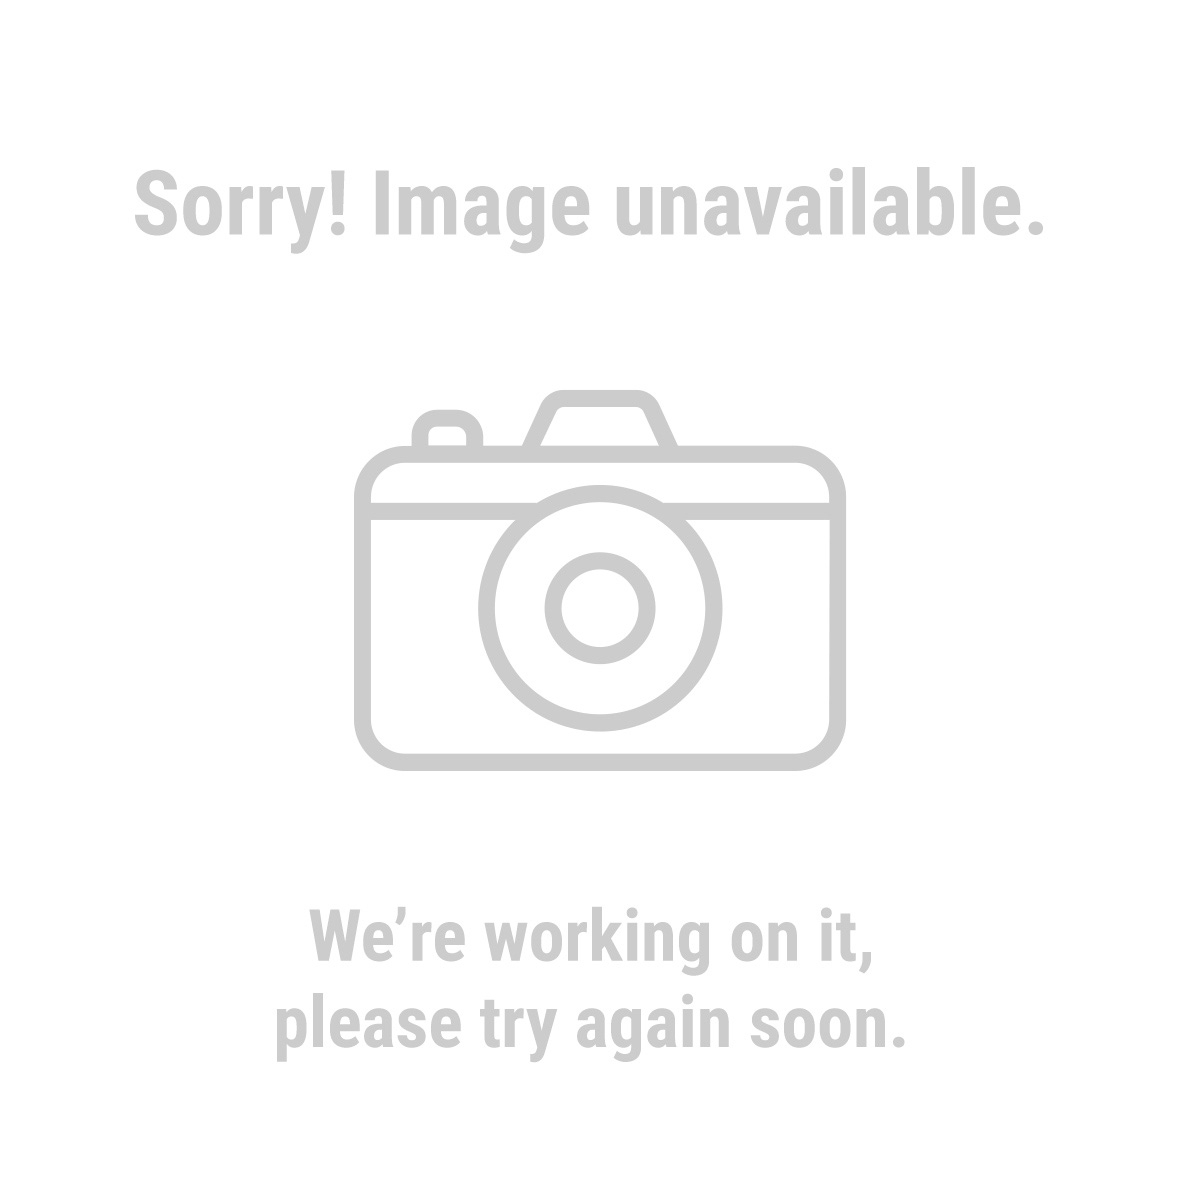 37350 Amber Lens Halogen Lights